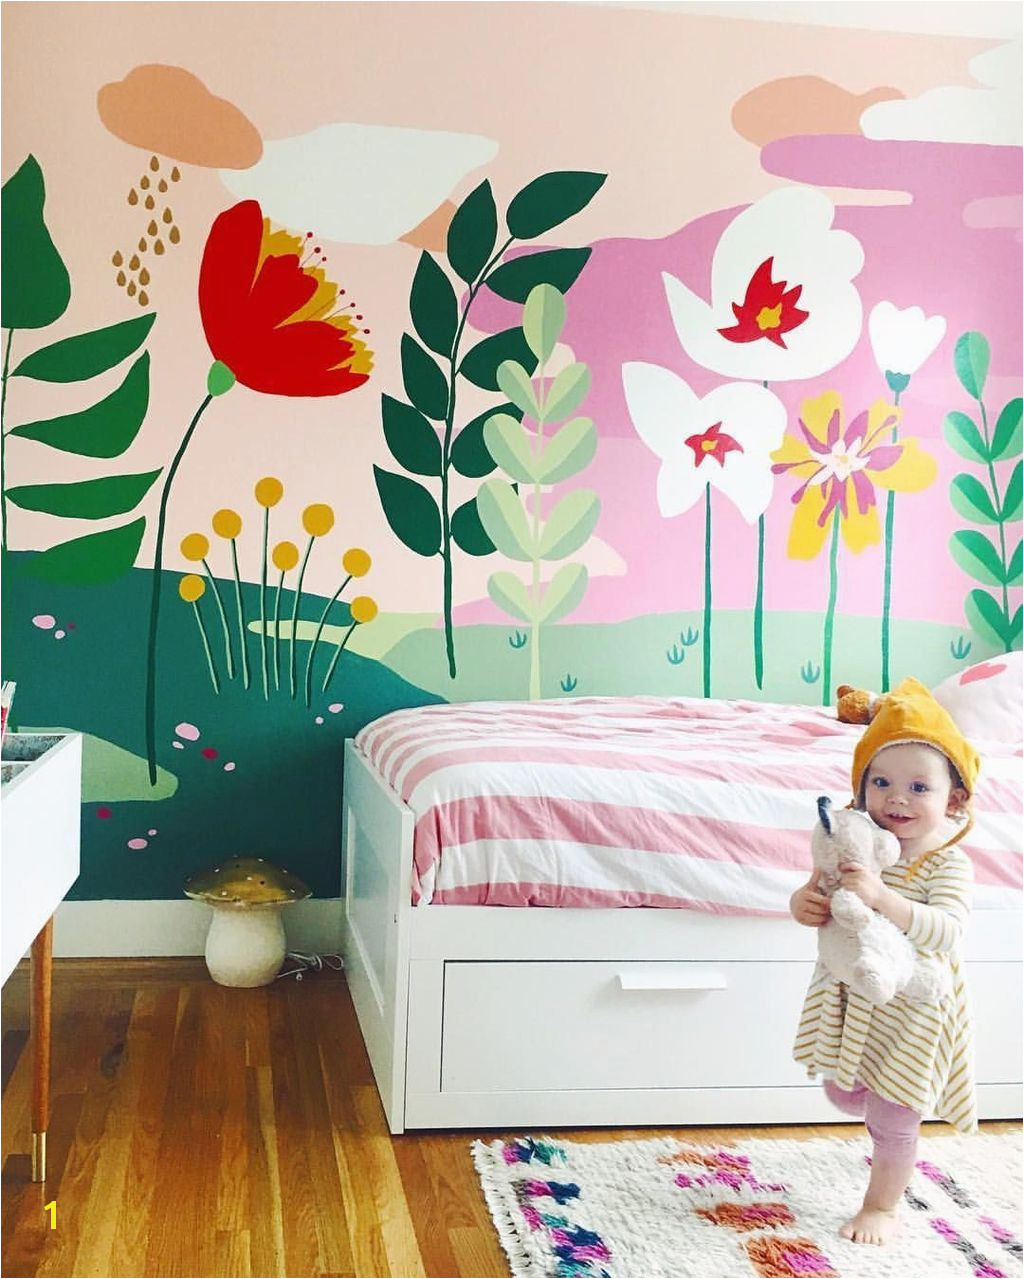 Amazing floral mural and super cute kiddo